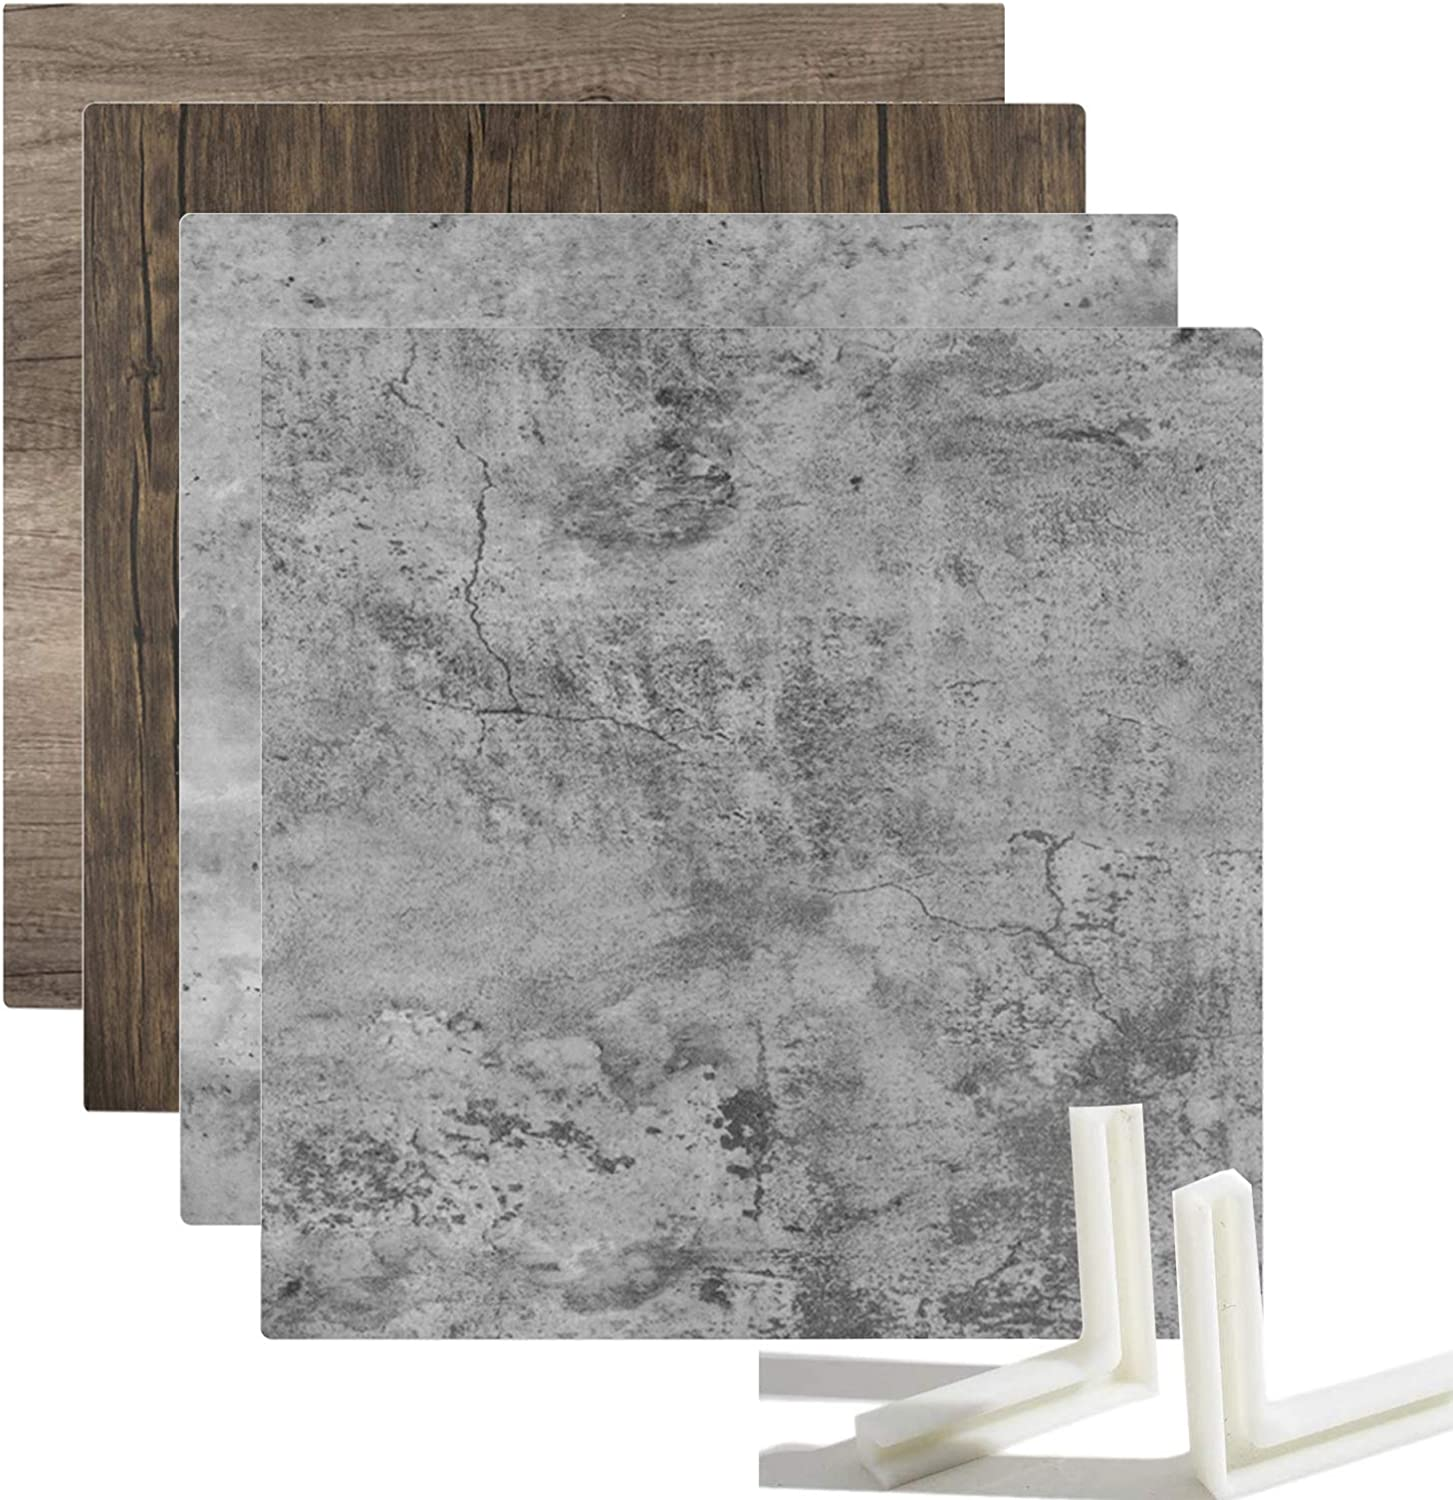 Youngerfoto 2 PCS Photo Backdrop Boards Kit, 24x24in Double Sided Wood Cement Texture Food Backdrops Tabletop Flat Lay Photography Backgrounds for Jewelry Cosmetics Small Product Props